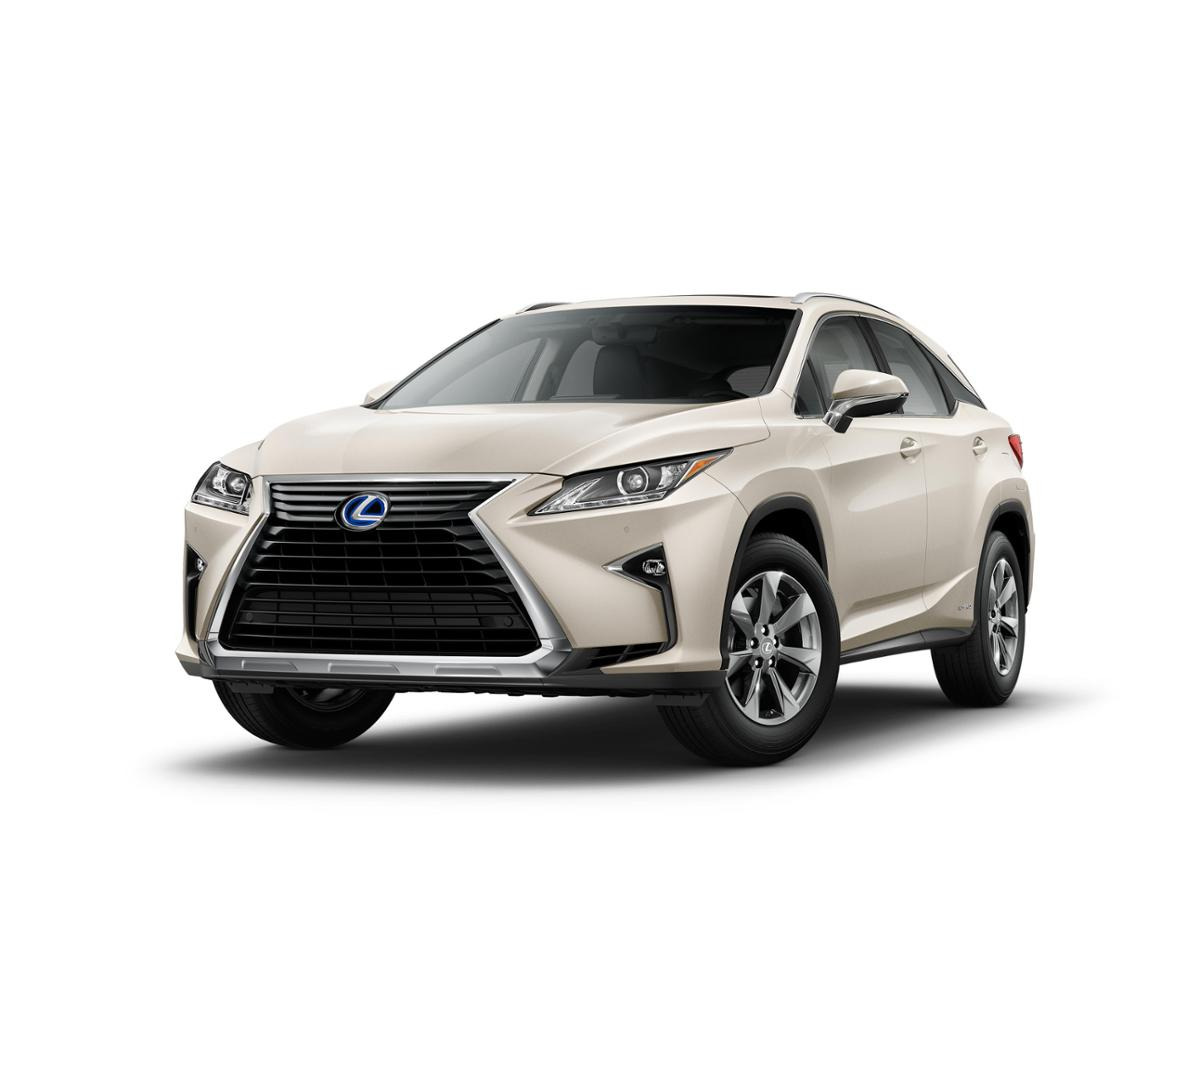 2017 Lexus RX 450h Vehicle Photo in Las Vegas, NV 89146